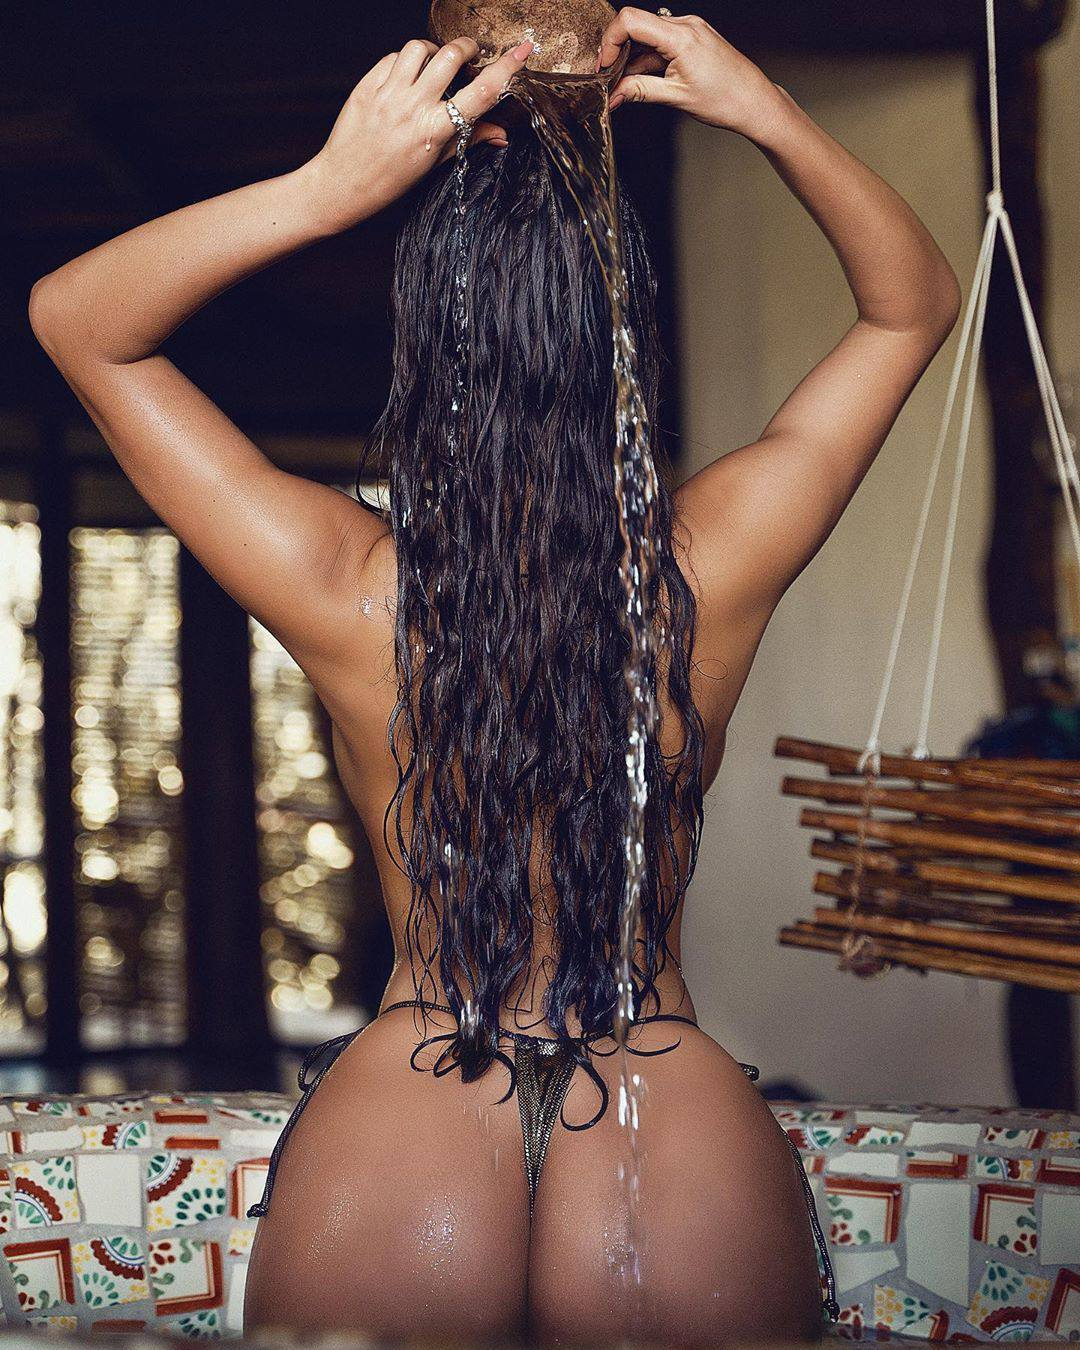 Demi Rose Mawby Magnificent Curvy Body In Sexy Topless Photoshoot 0004